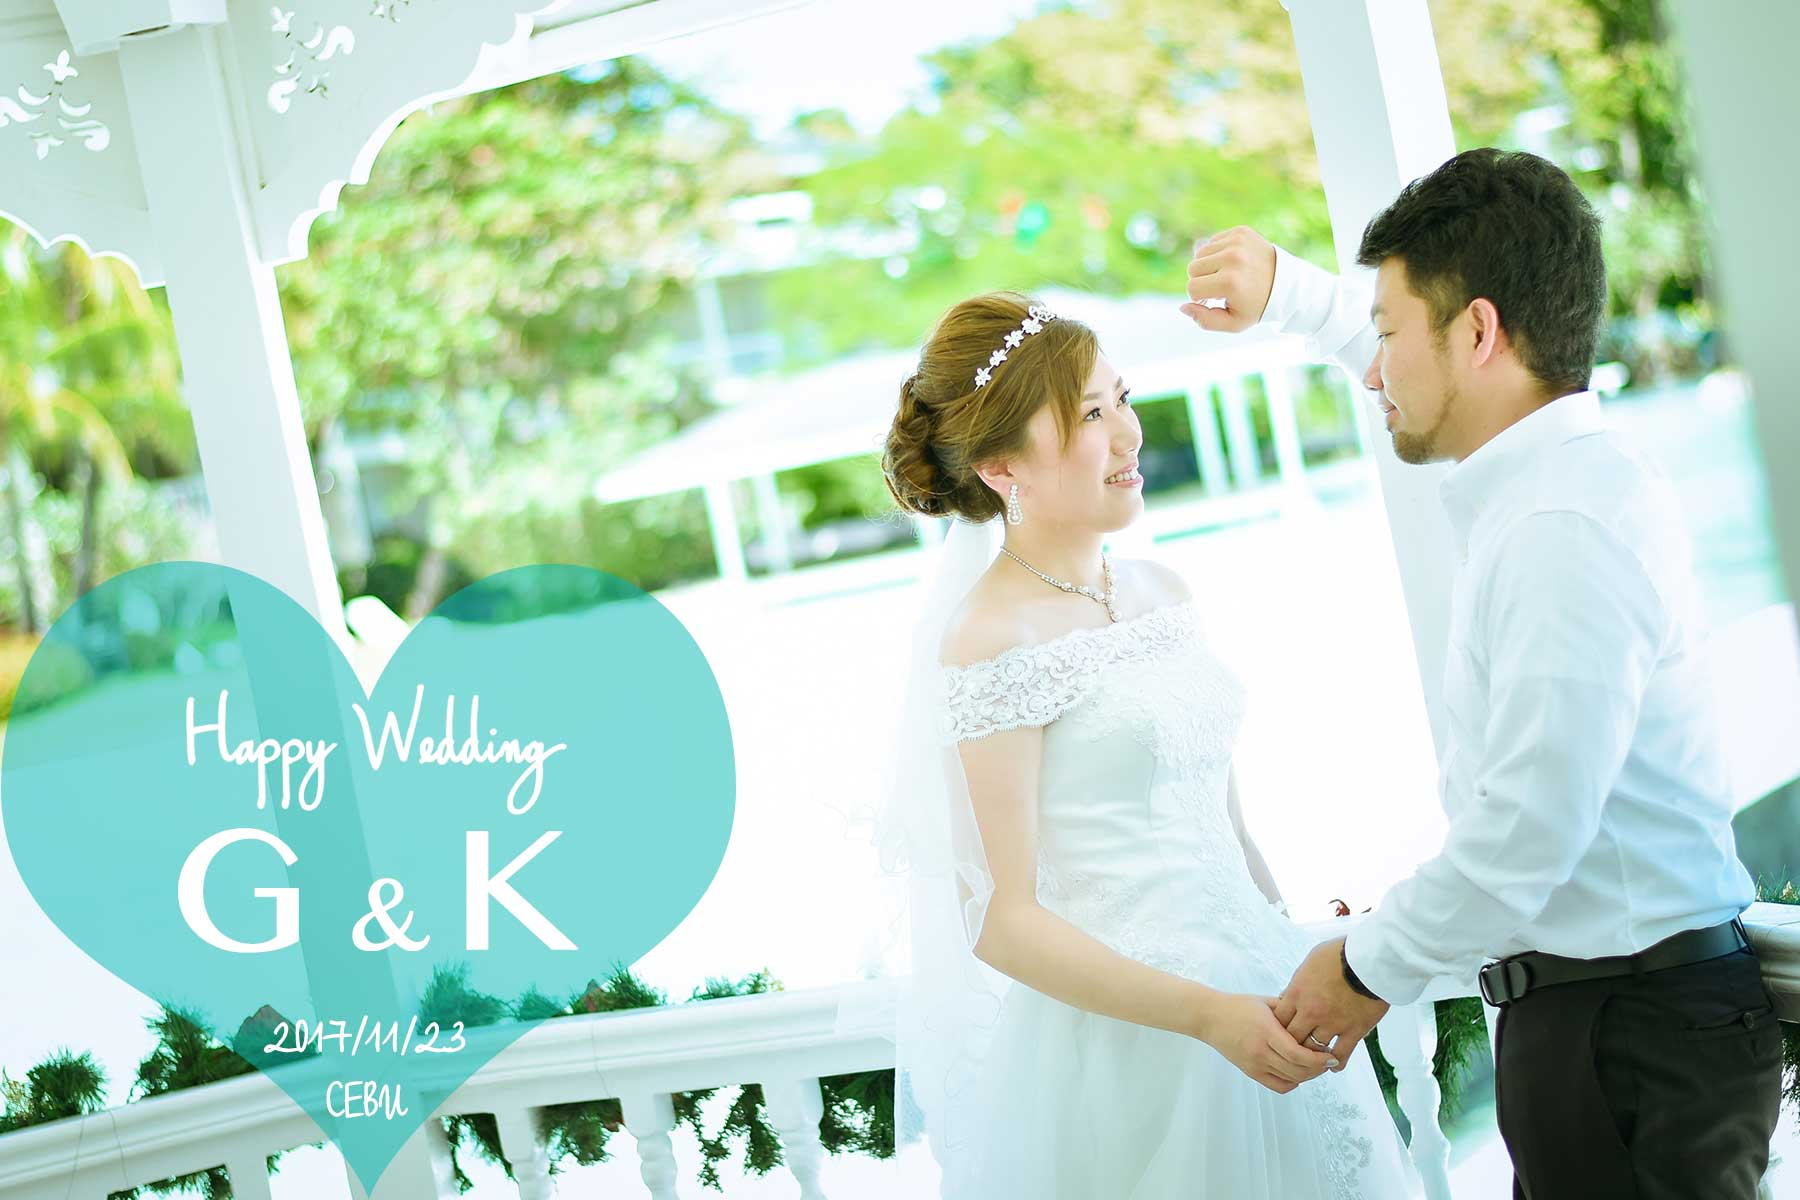 cebu-wedding-plantationbay